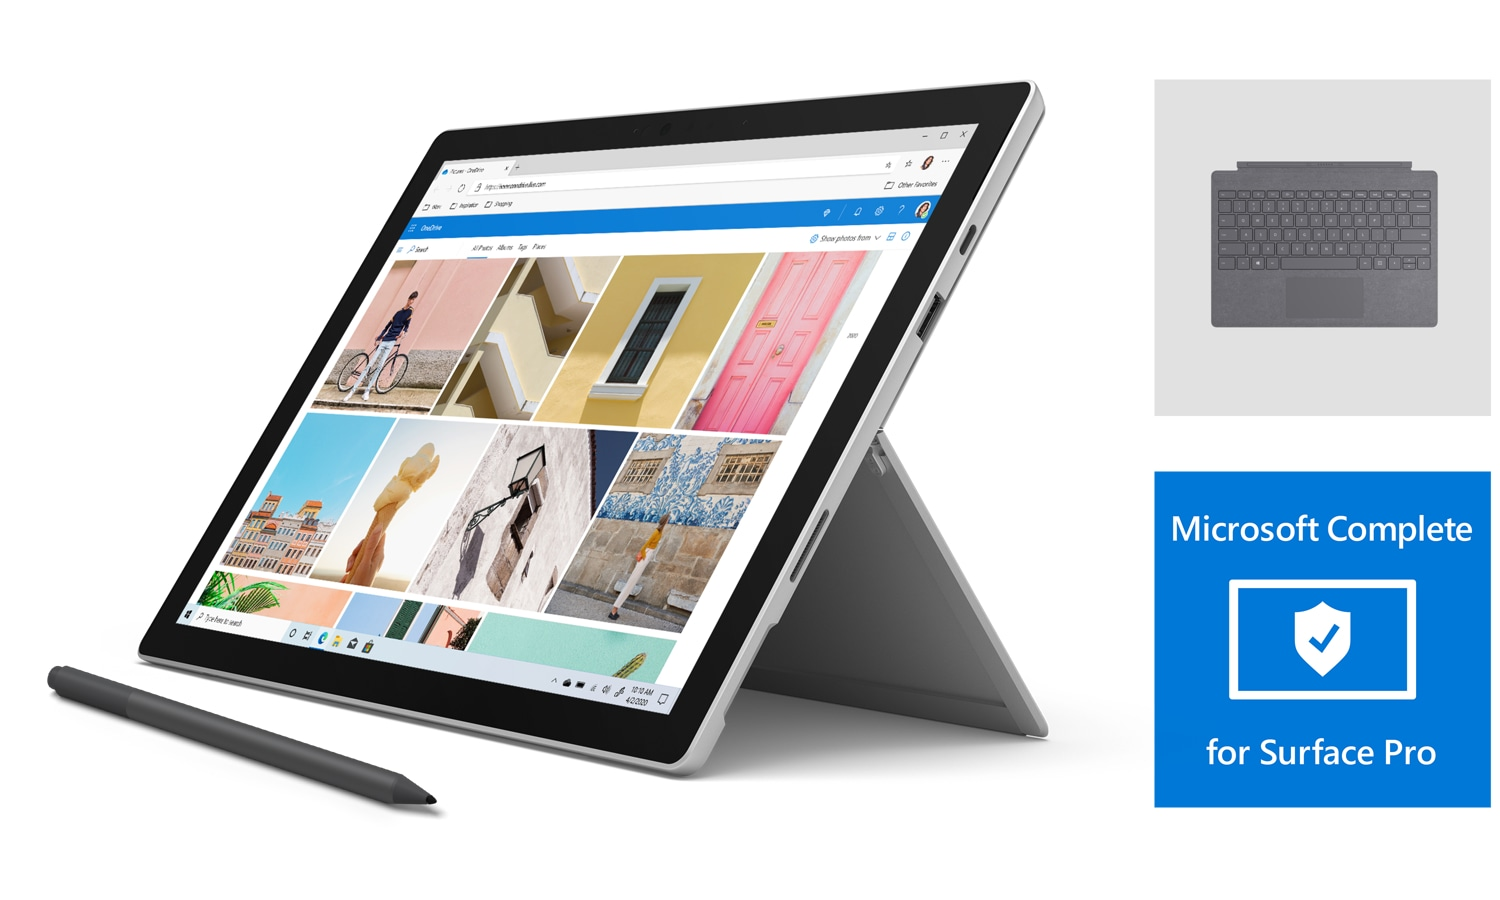 Surface Pro 7 bundle with Platinum typecover and black pen, with Microsoft Complete, for Back to School 2020.